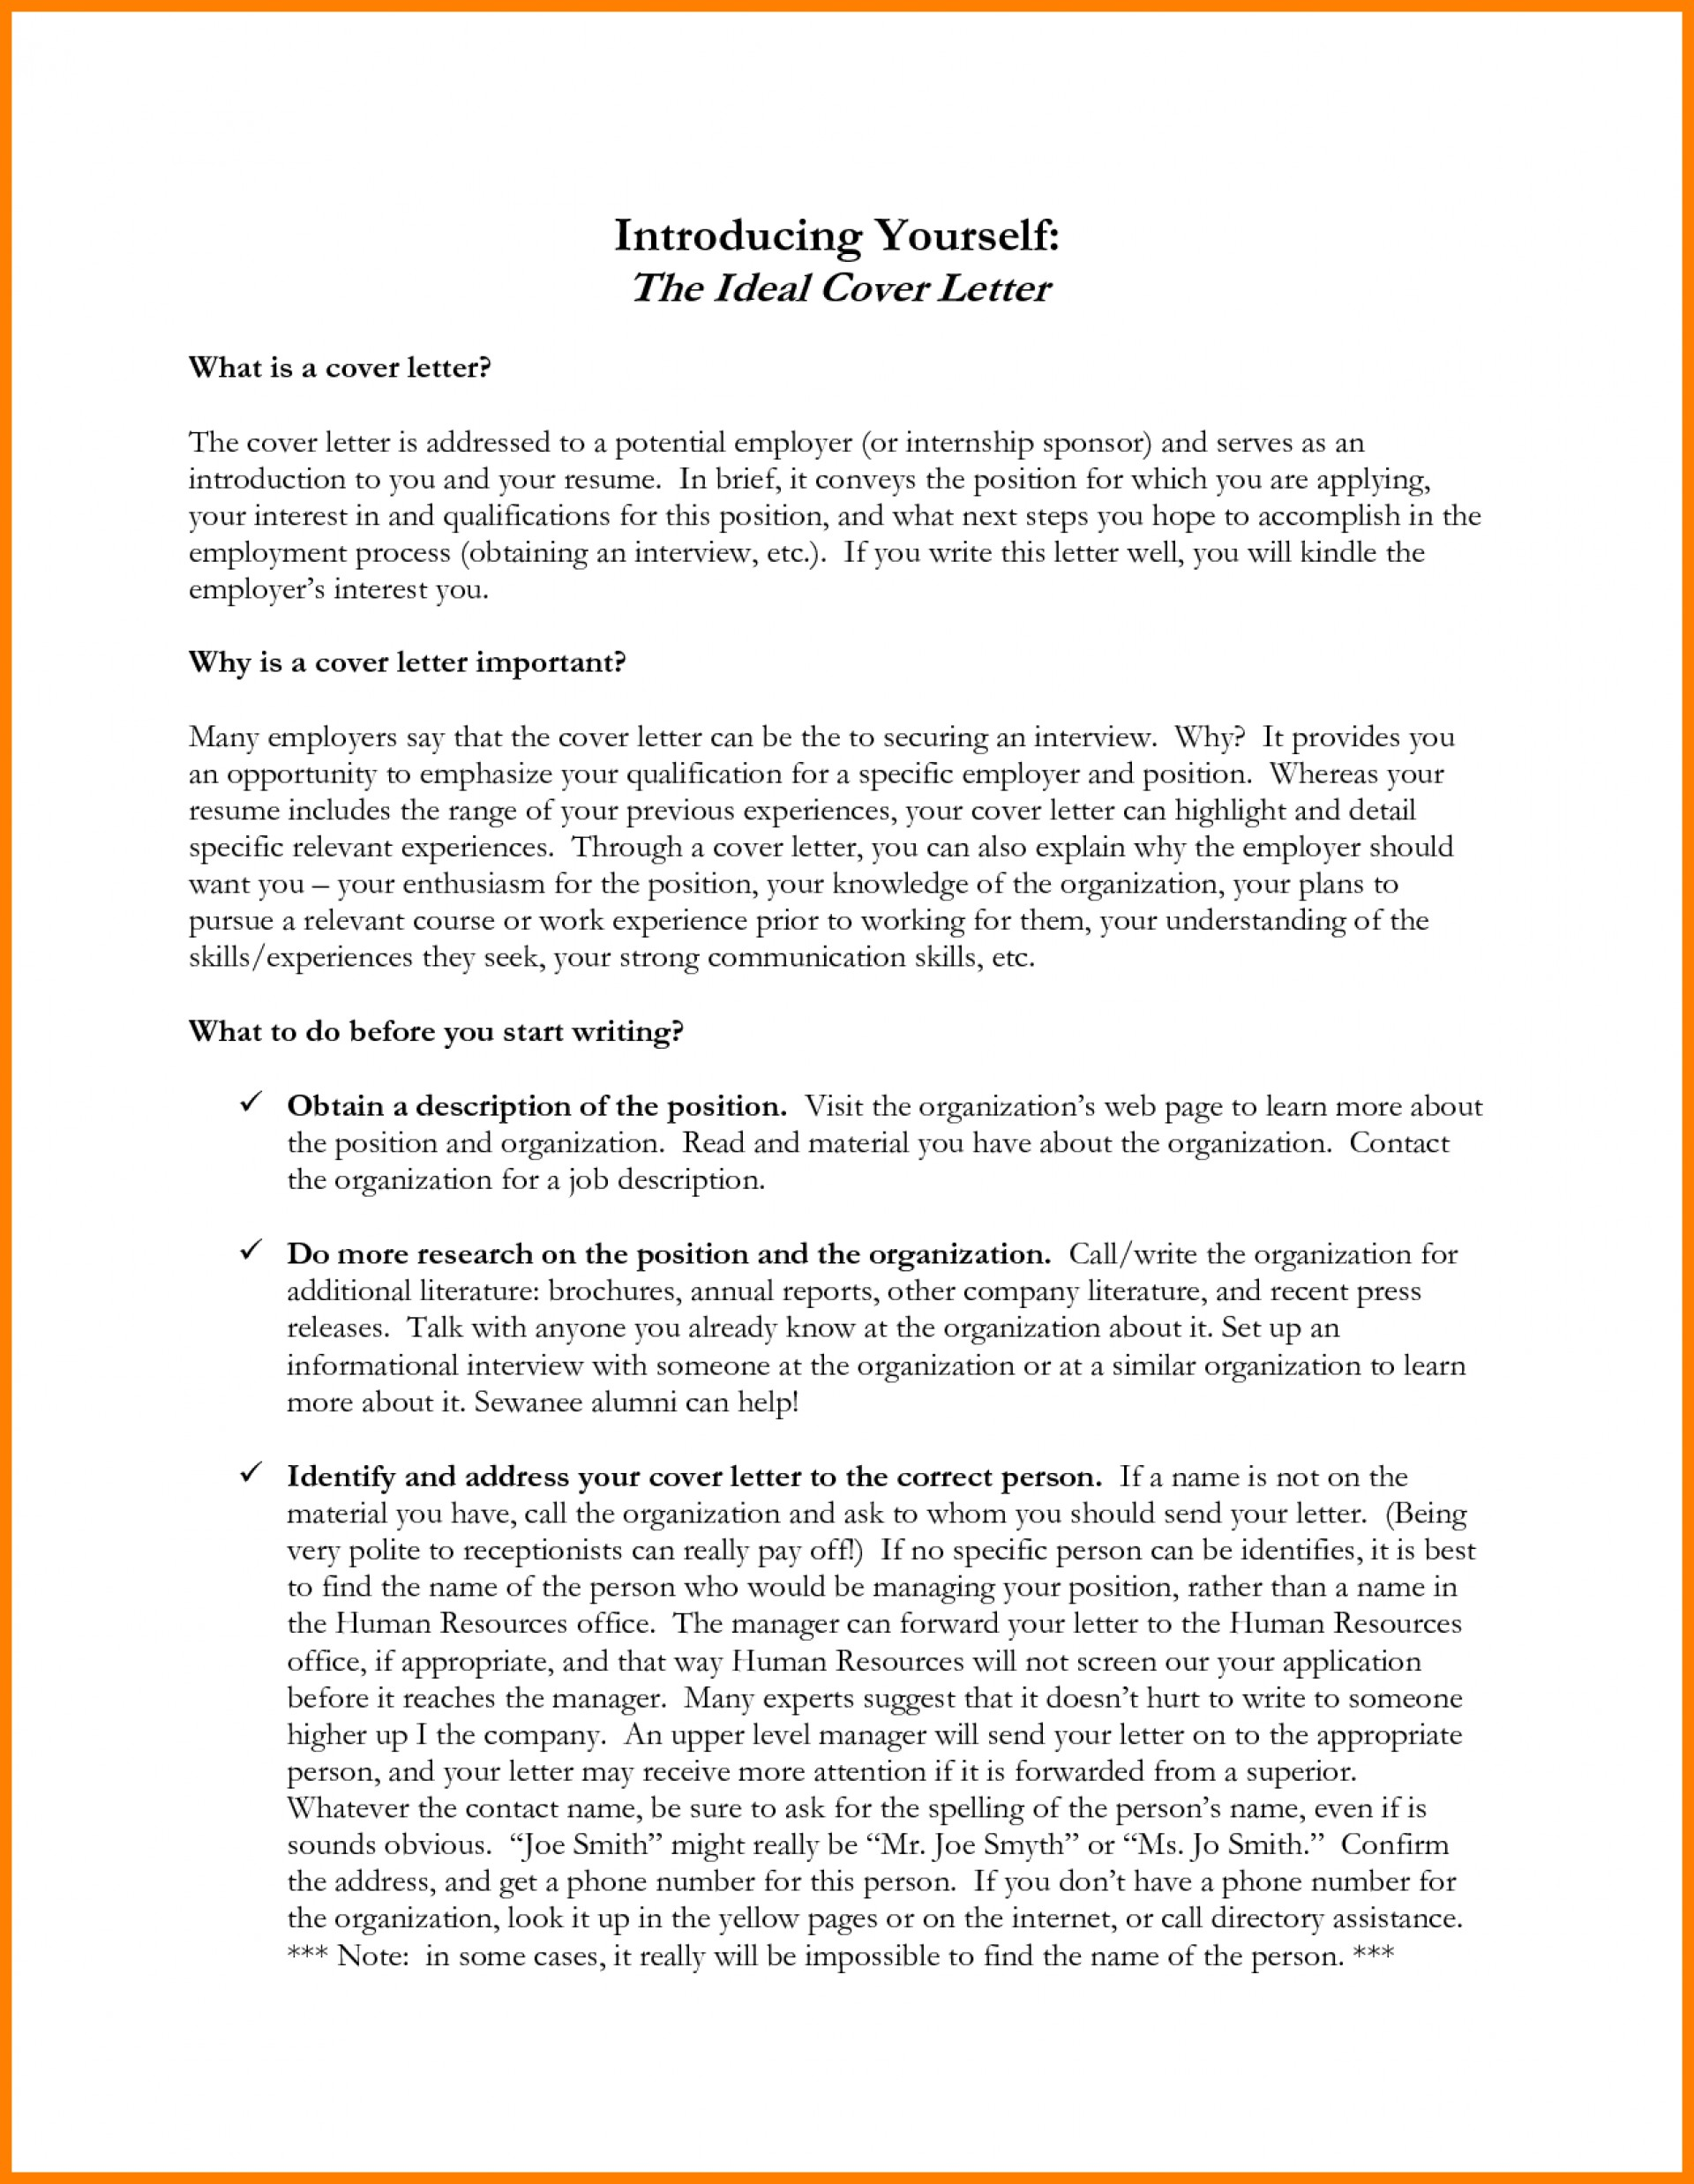 008 Essay Example 9913528656 Custom Essays Online To Remarkable Read Free Best 1920